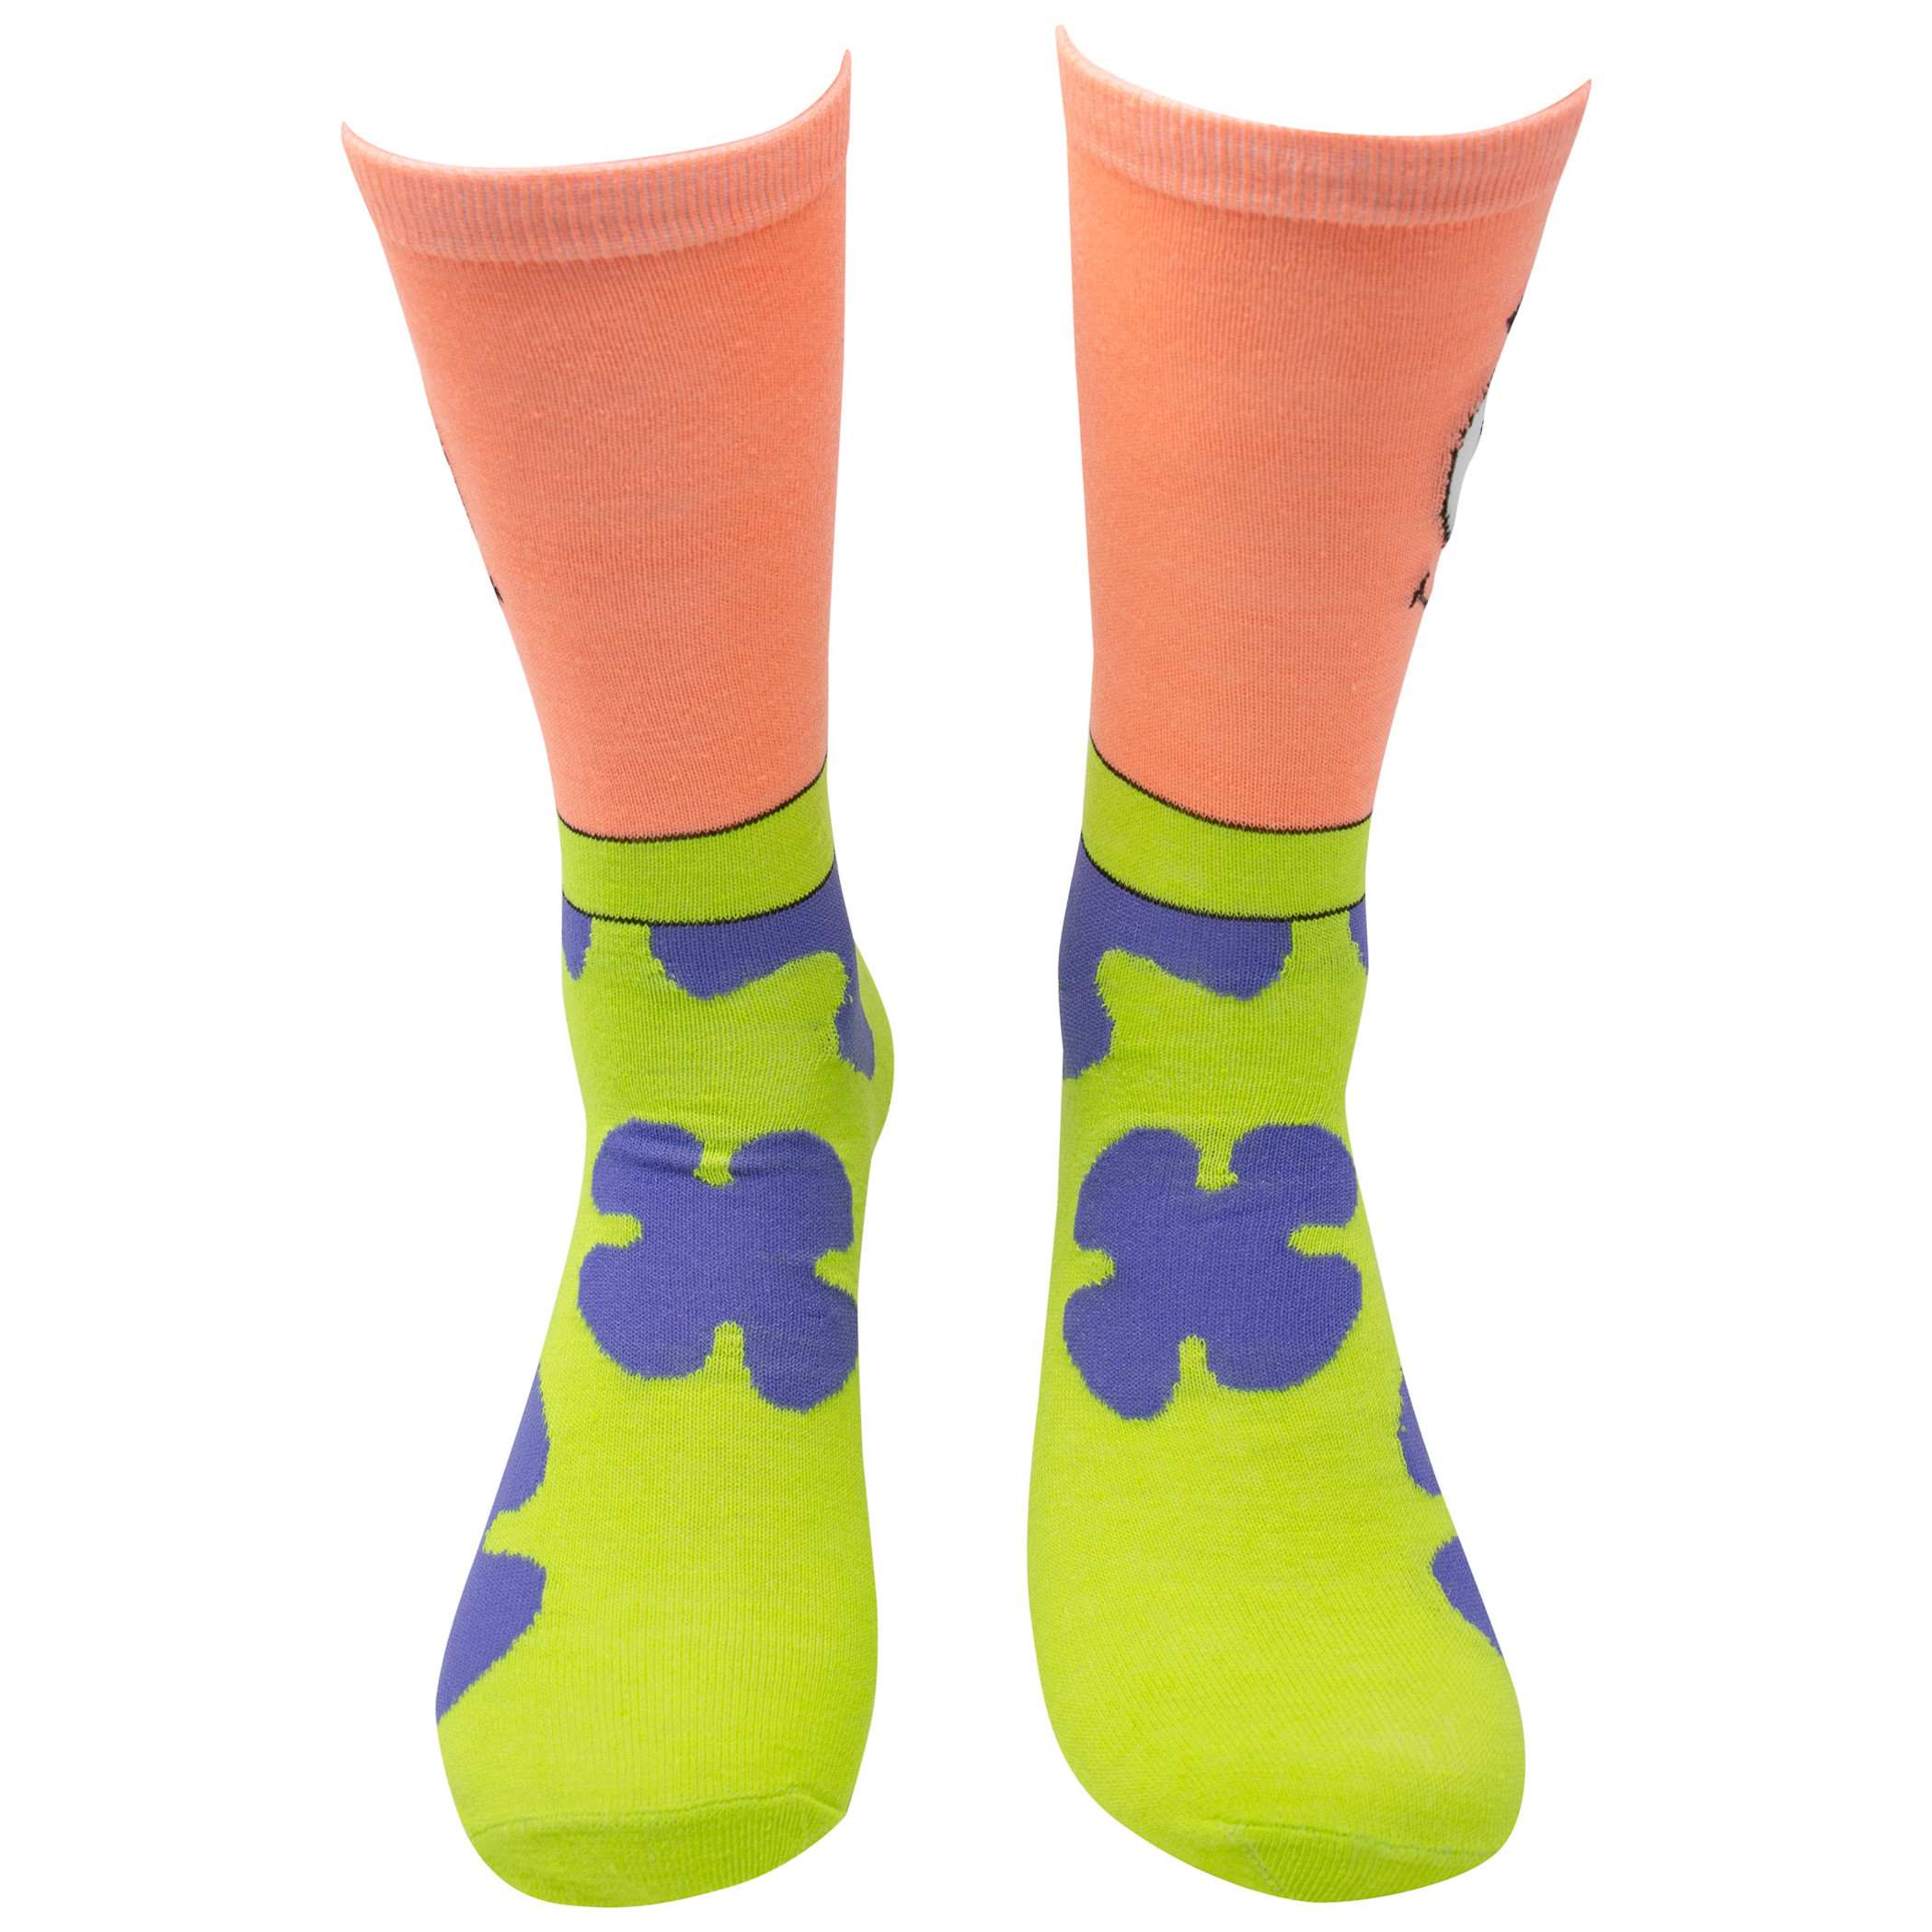 SpongeBob SquarePants 2-Pack Crew Socks